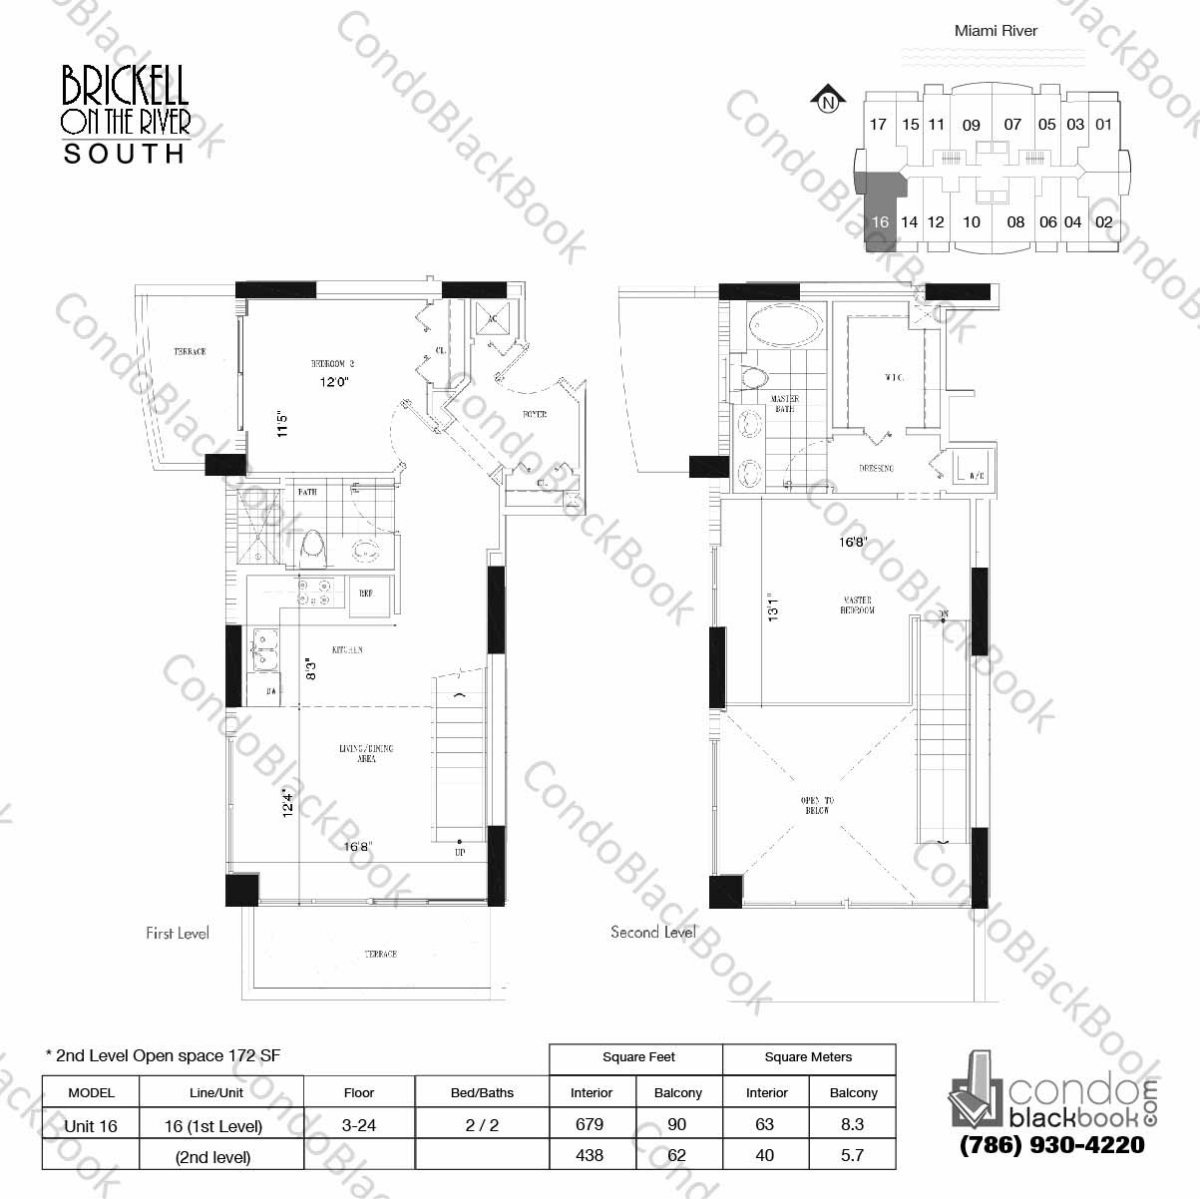 Floor plan for Brickell on the River North Brickell Miami, model Unit 16, line 16, 2/2 bedrooms, 1117 sq ft